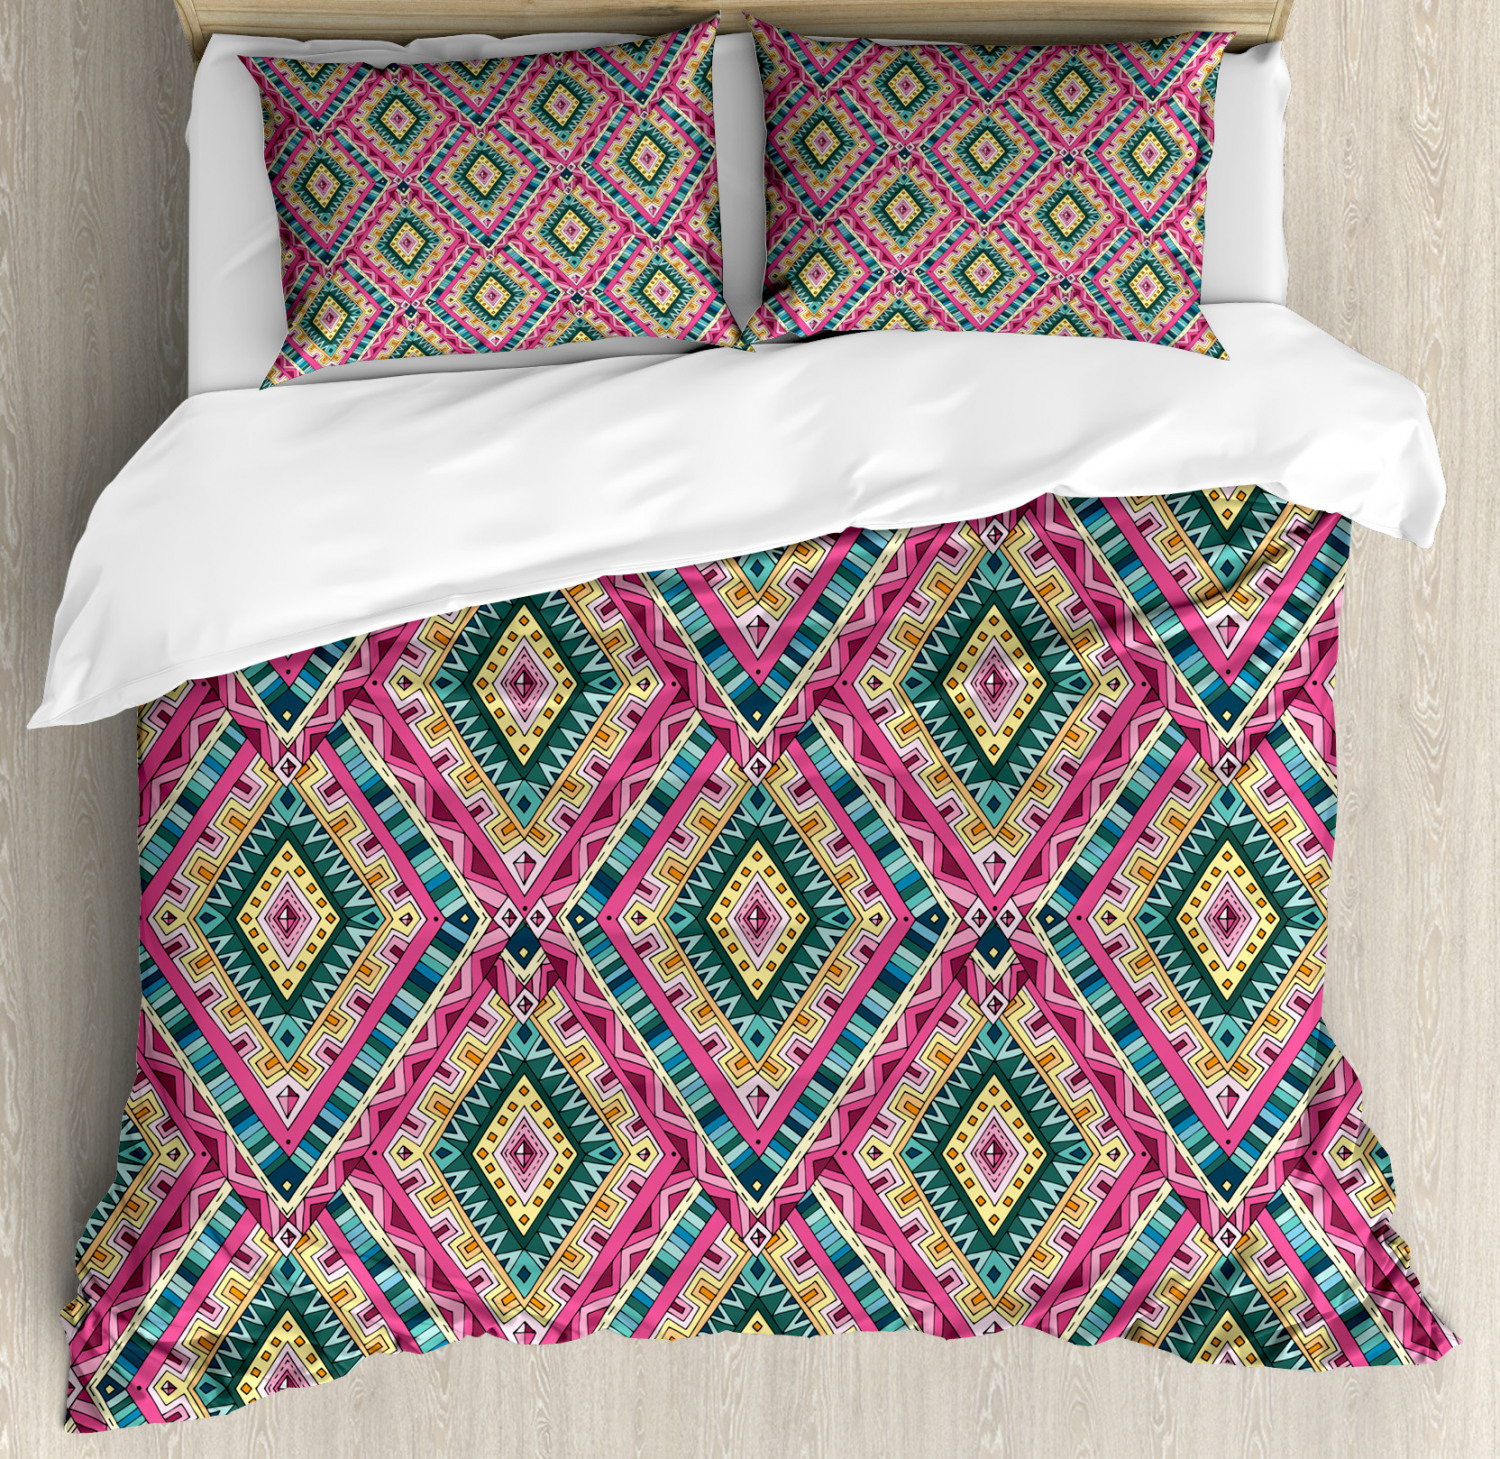 Asian Duvet Cover Set with Pillow Shams Ethnic Geometric Doodle Print